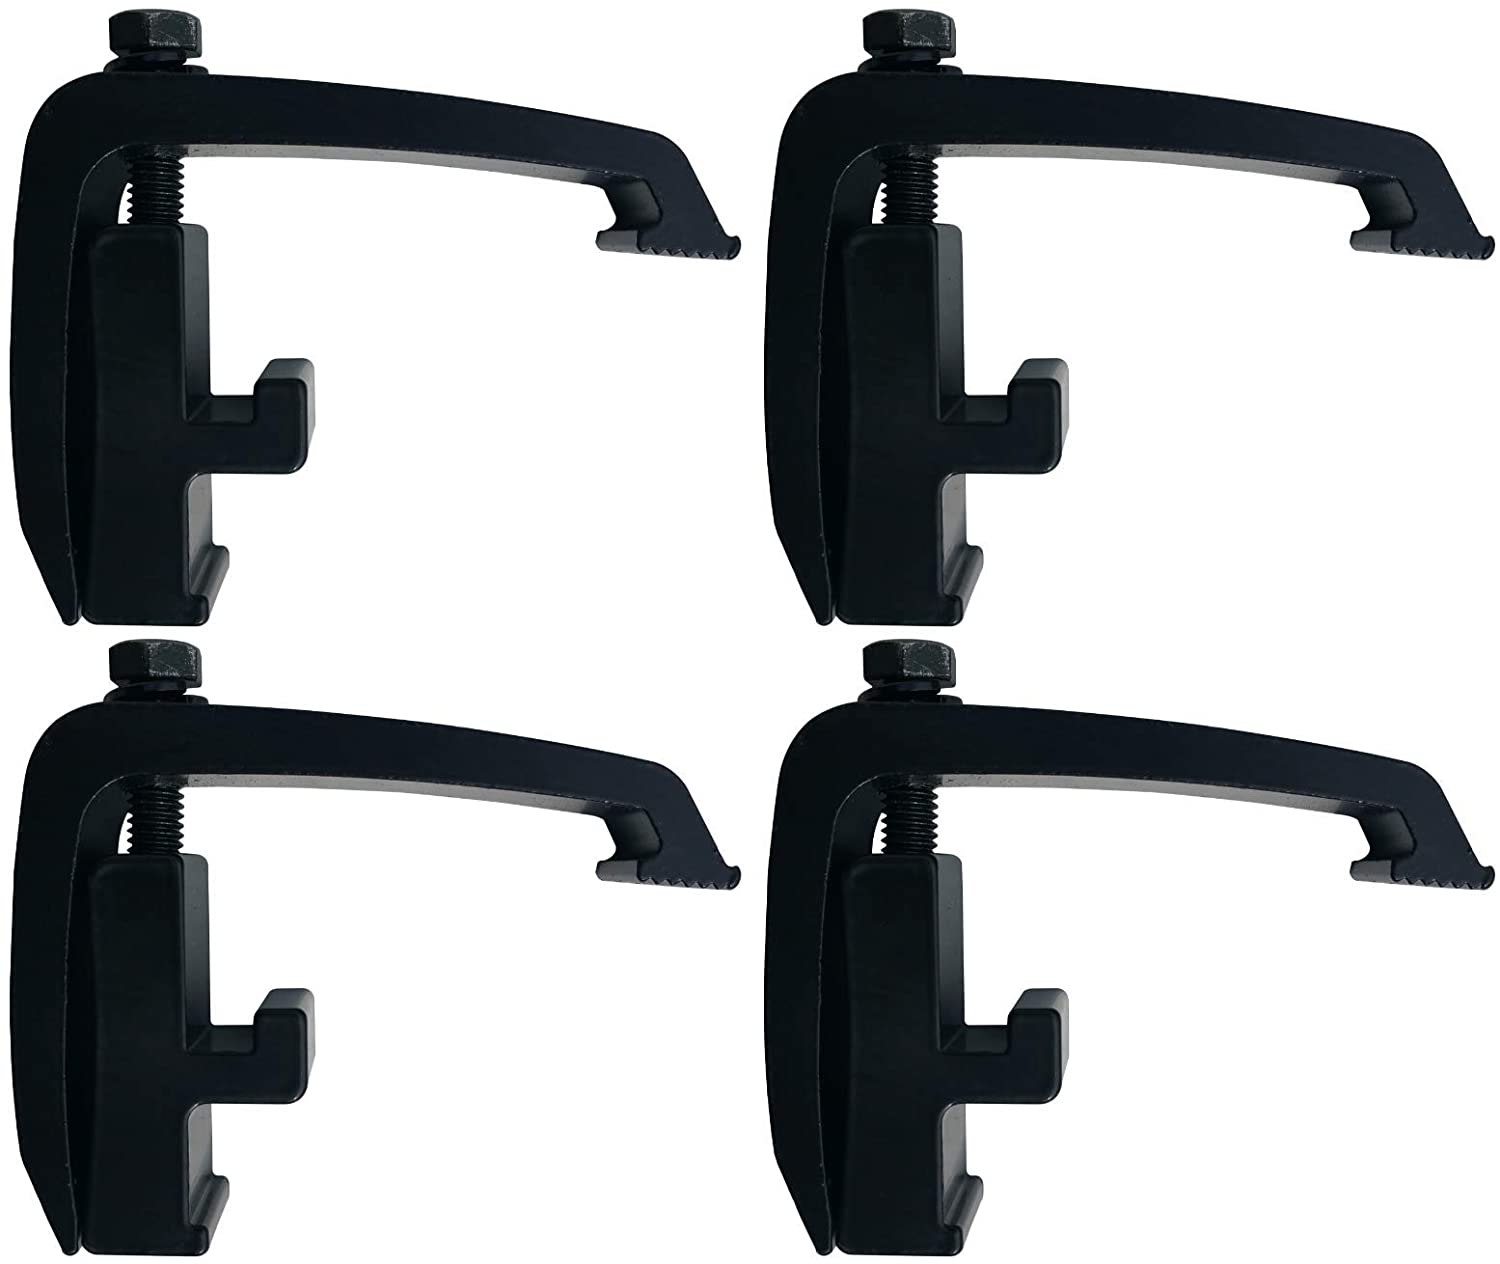 Nissan Titan Camper Shell Clamps API Clamps 6 Pack Black Toyota Tacoma Mounting Channel Track Truck Topper Cap